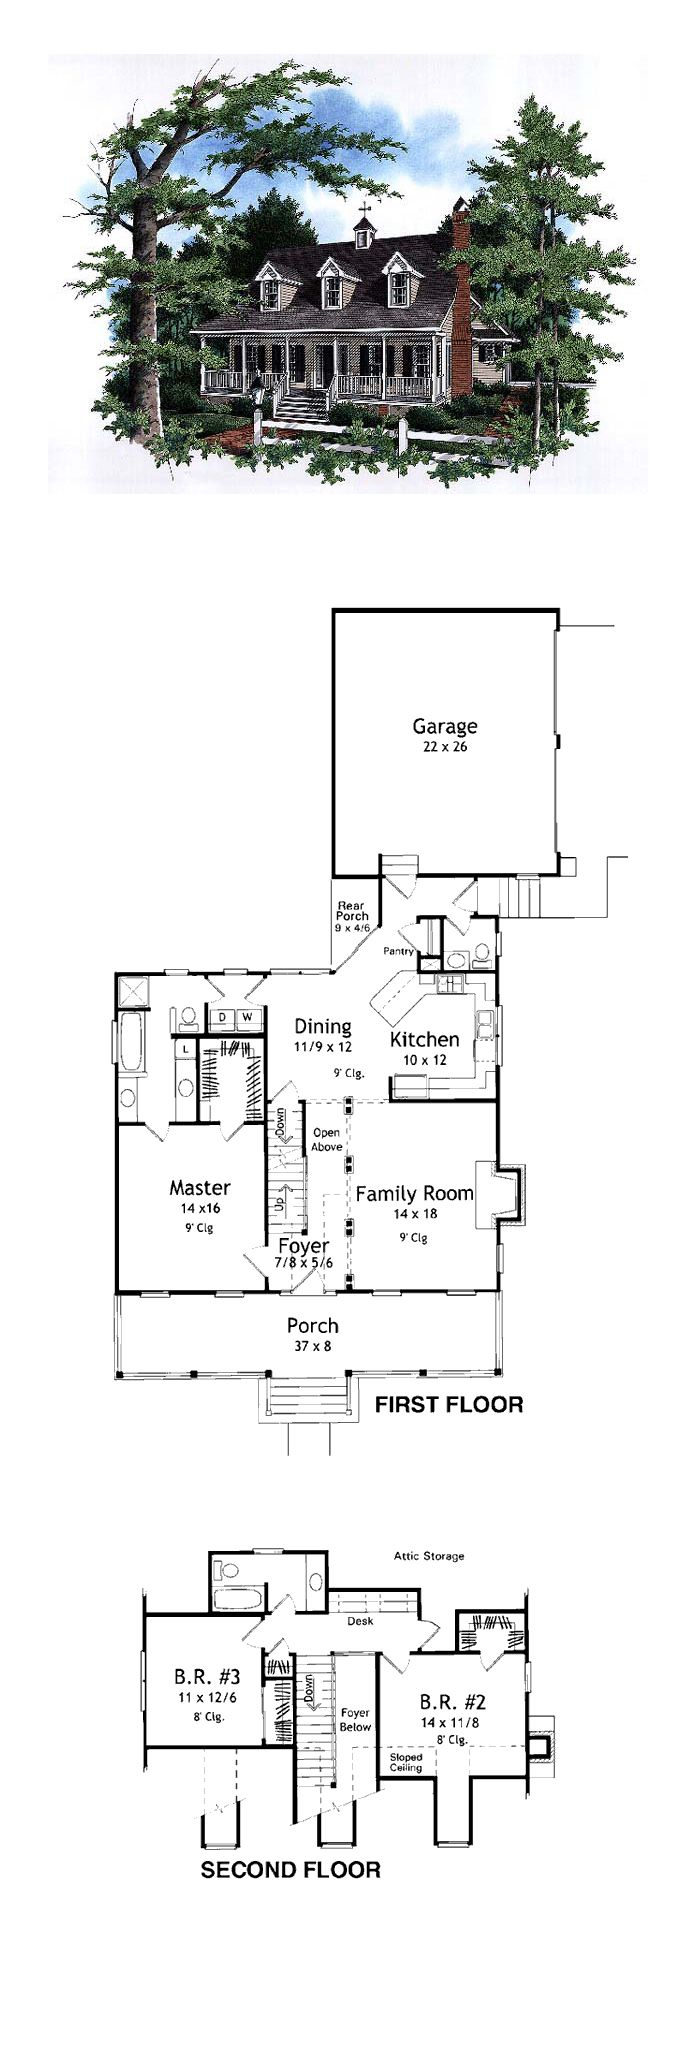 cape cod country house plan 93452 bedrooms house and garage design cape cod house plan 93452 total living area 1815 sq ft